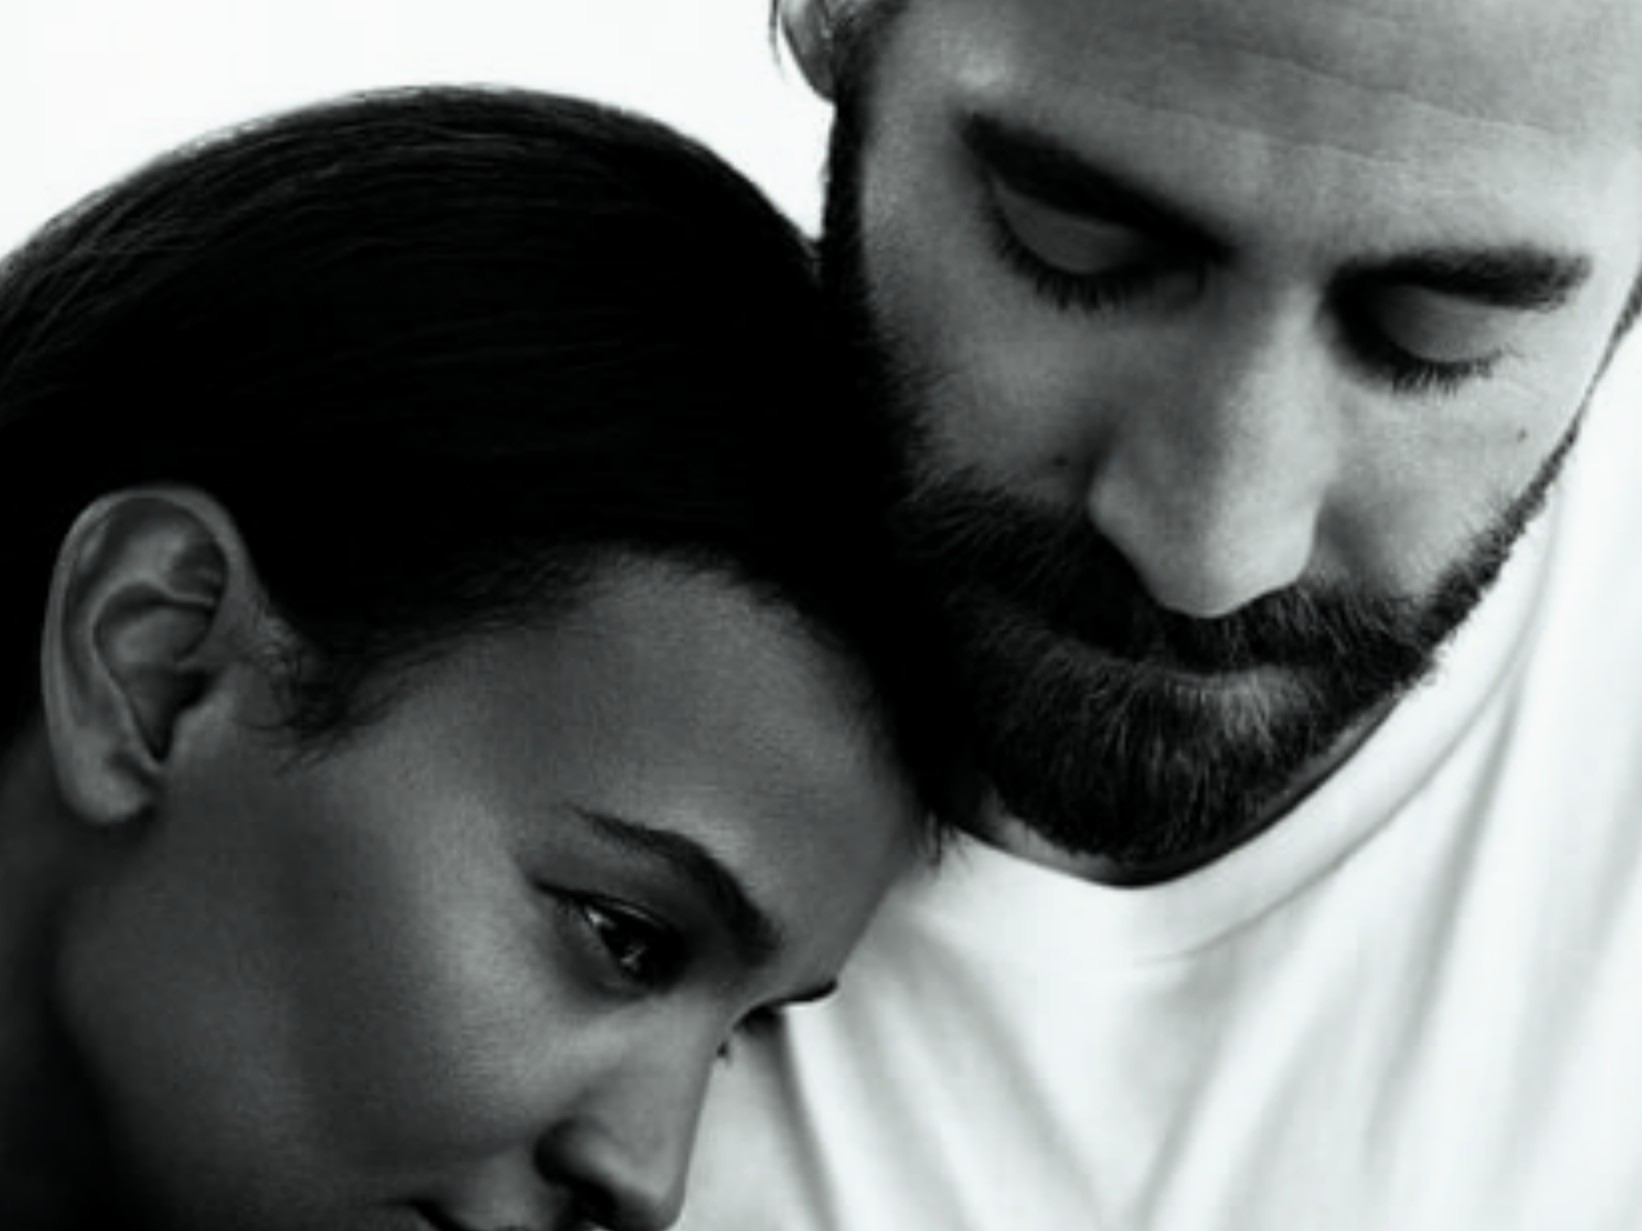 Jake Gyllenhaal Stars in Eternity Calvin Klein Campaign - Get the First Look!